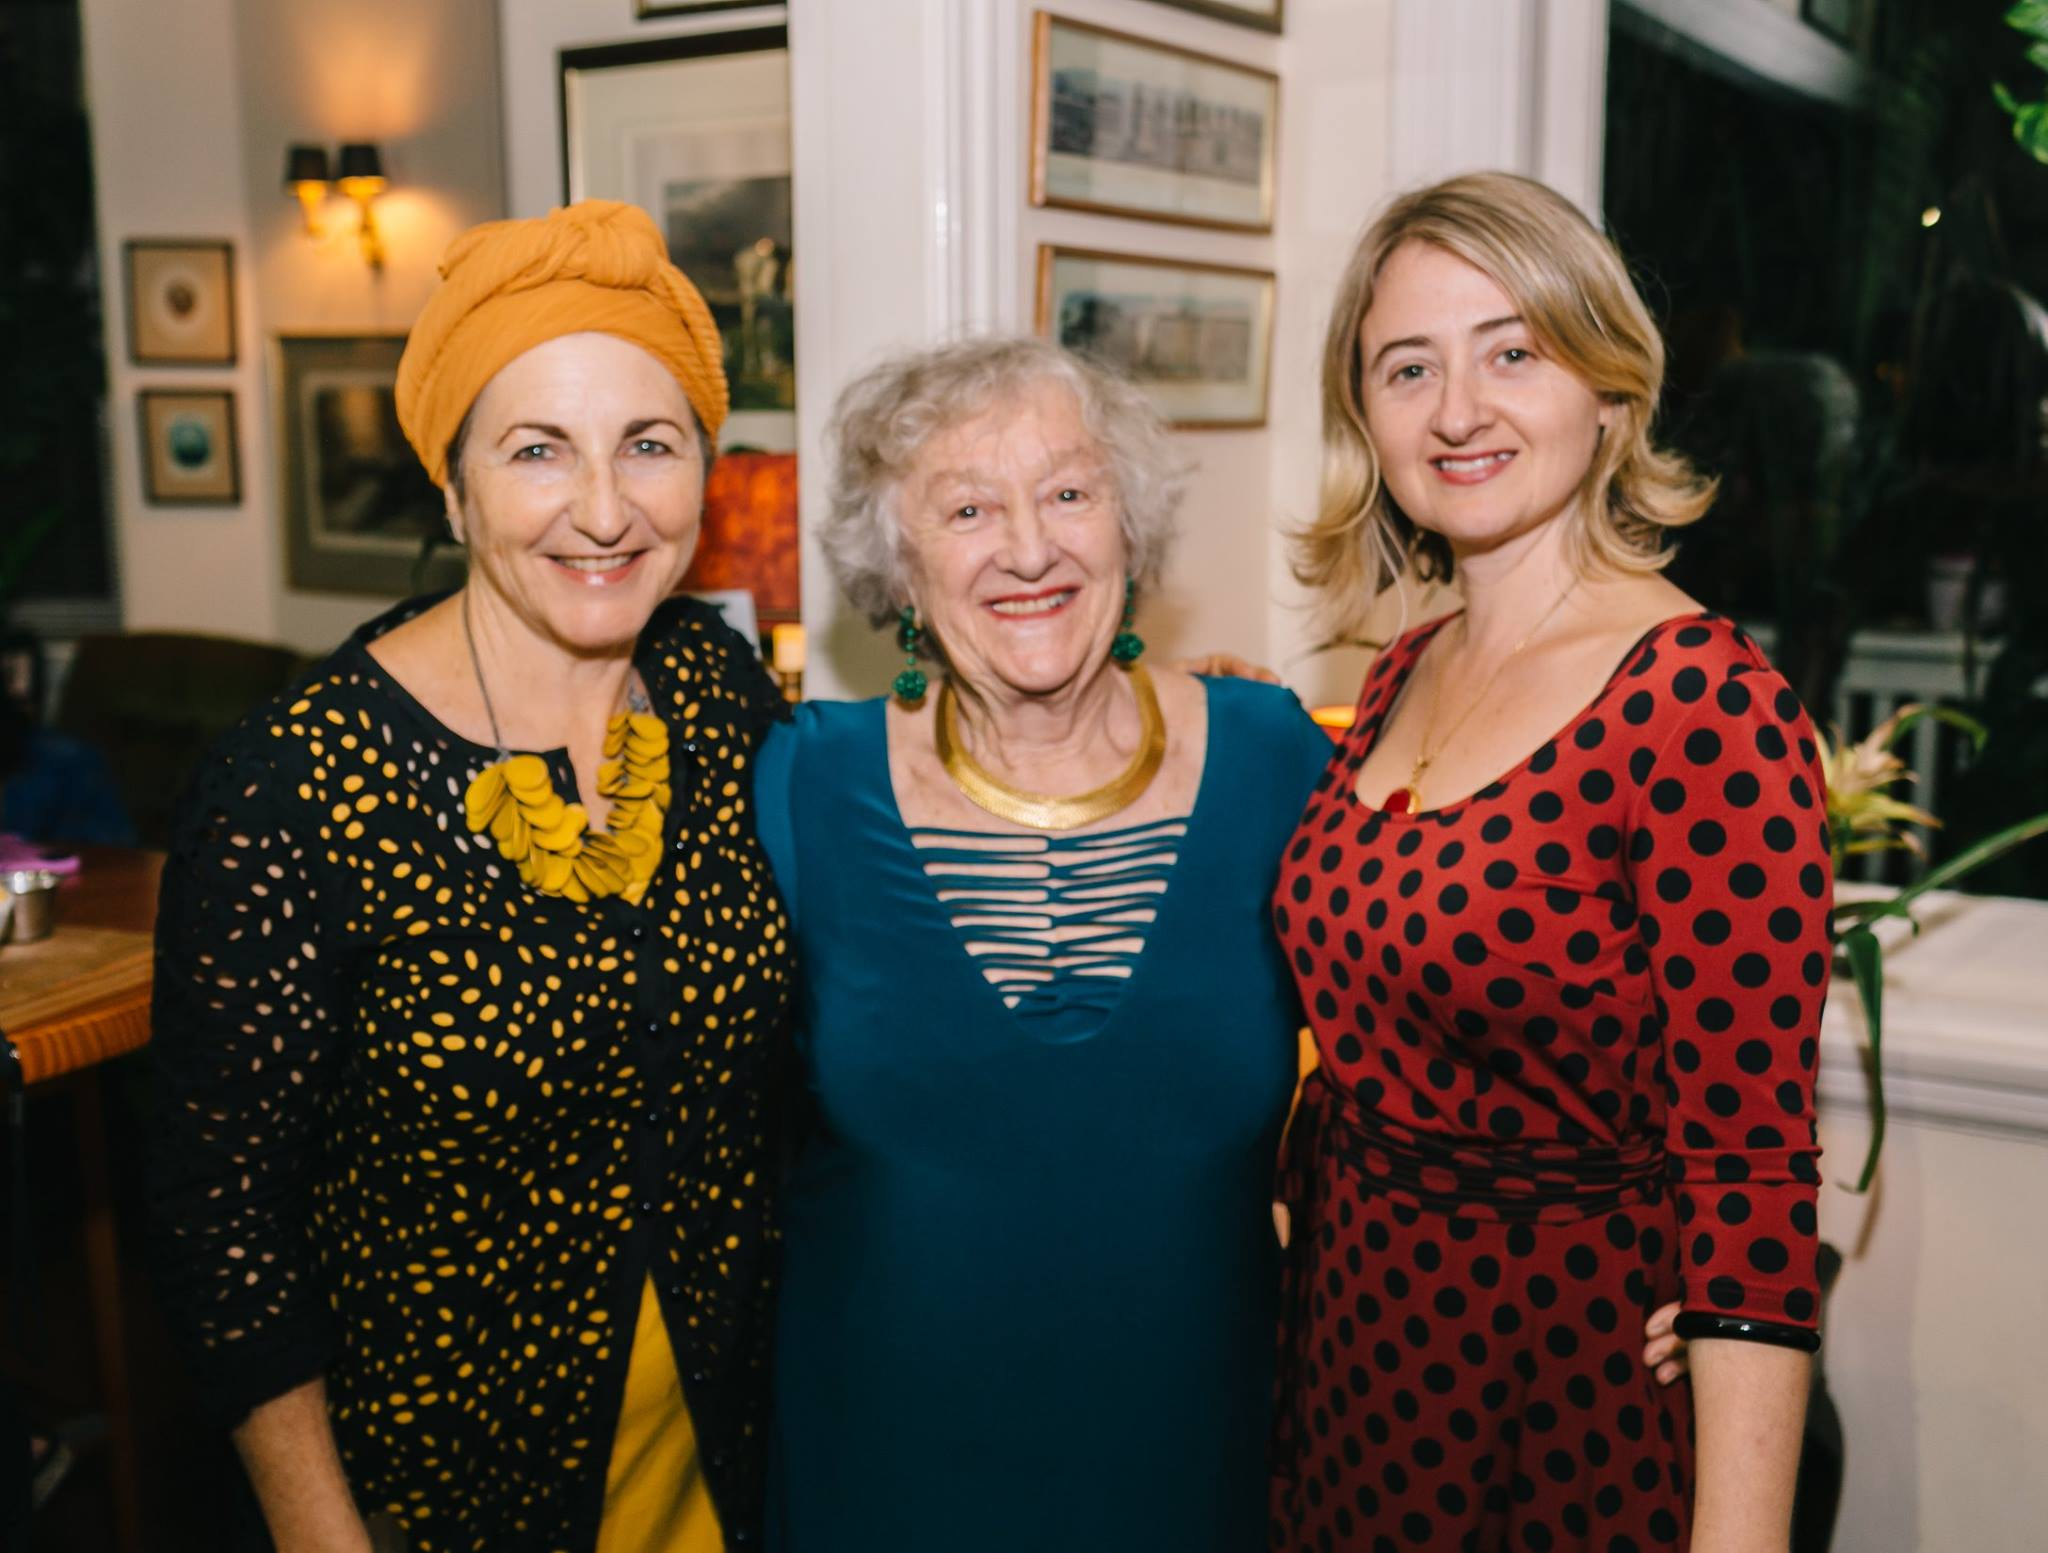 At our April Creative Mama Evening Talk, 'Body Bold Body Beautiful' featuring photographic artist Ella Dreyfus. With my own creative mother, Bev, who turned 80 on the same day!